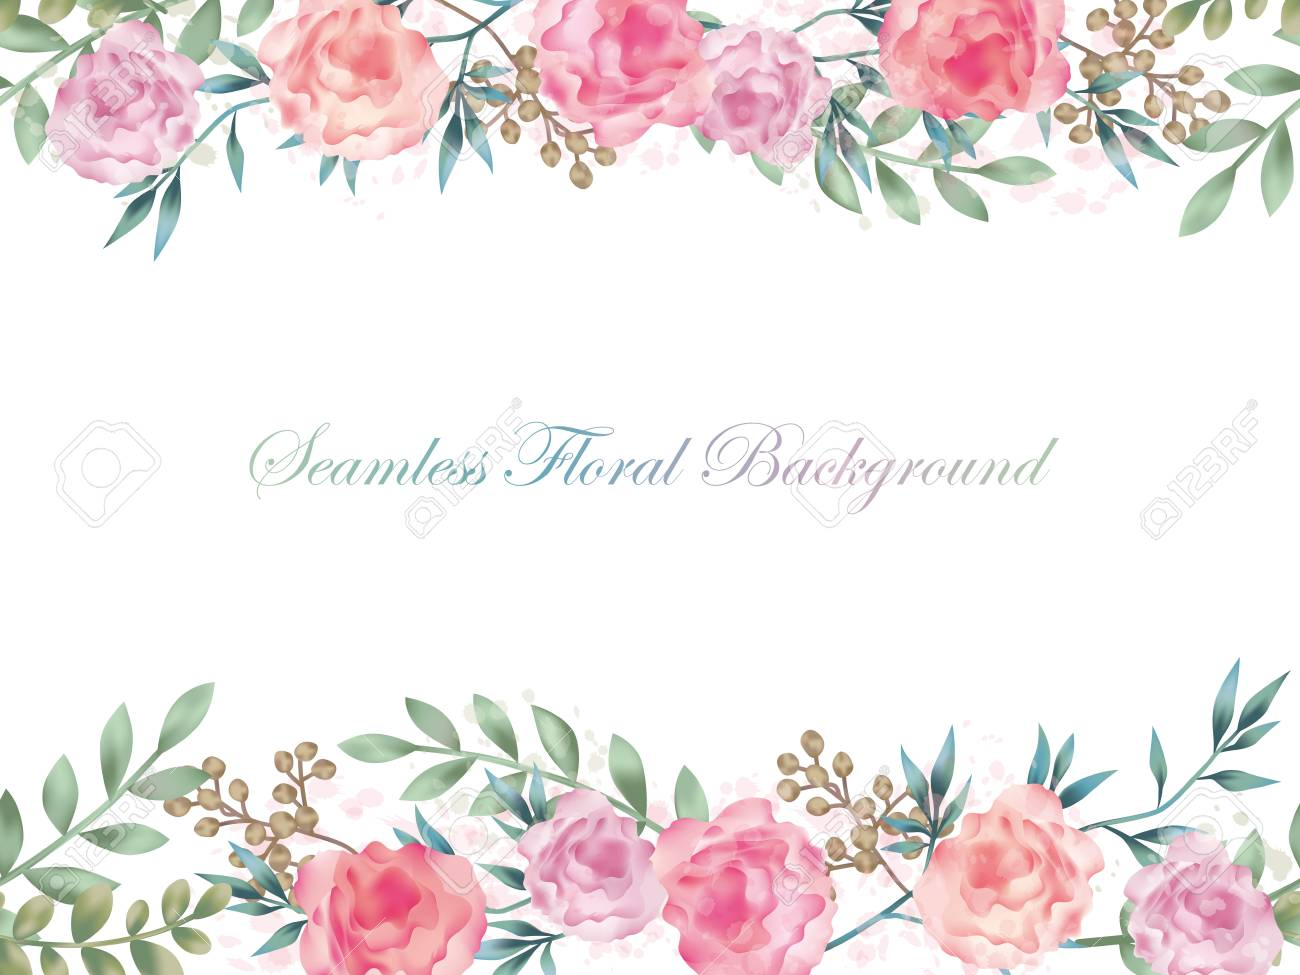 Seamless Watercolor Flower Background Illustration With Text